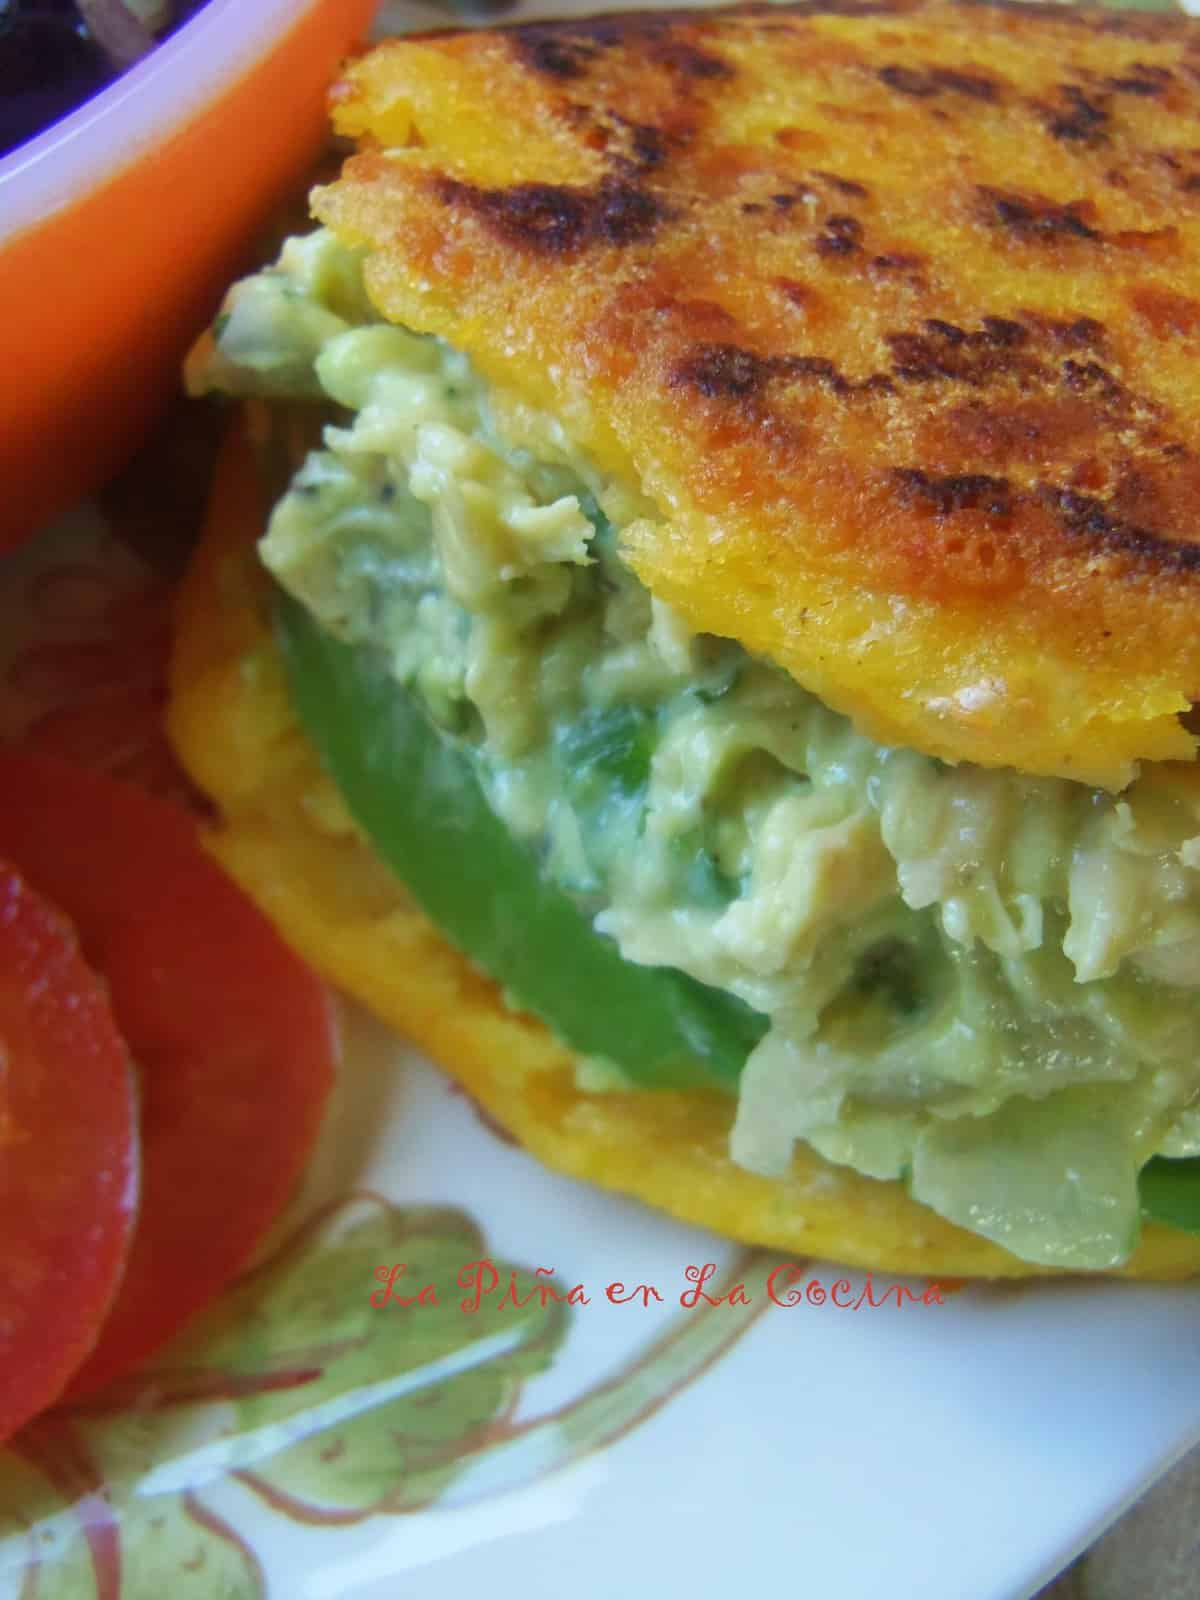 An arepa corn cake filled with reina pepiada, a fresh avocado chicken salad.